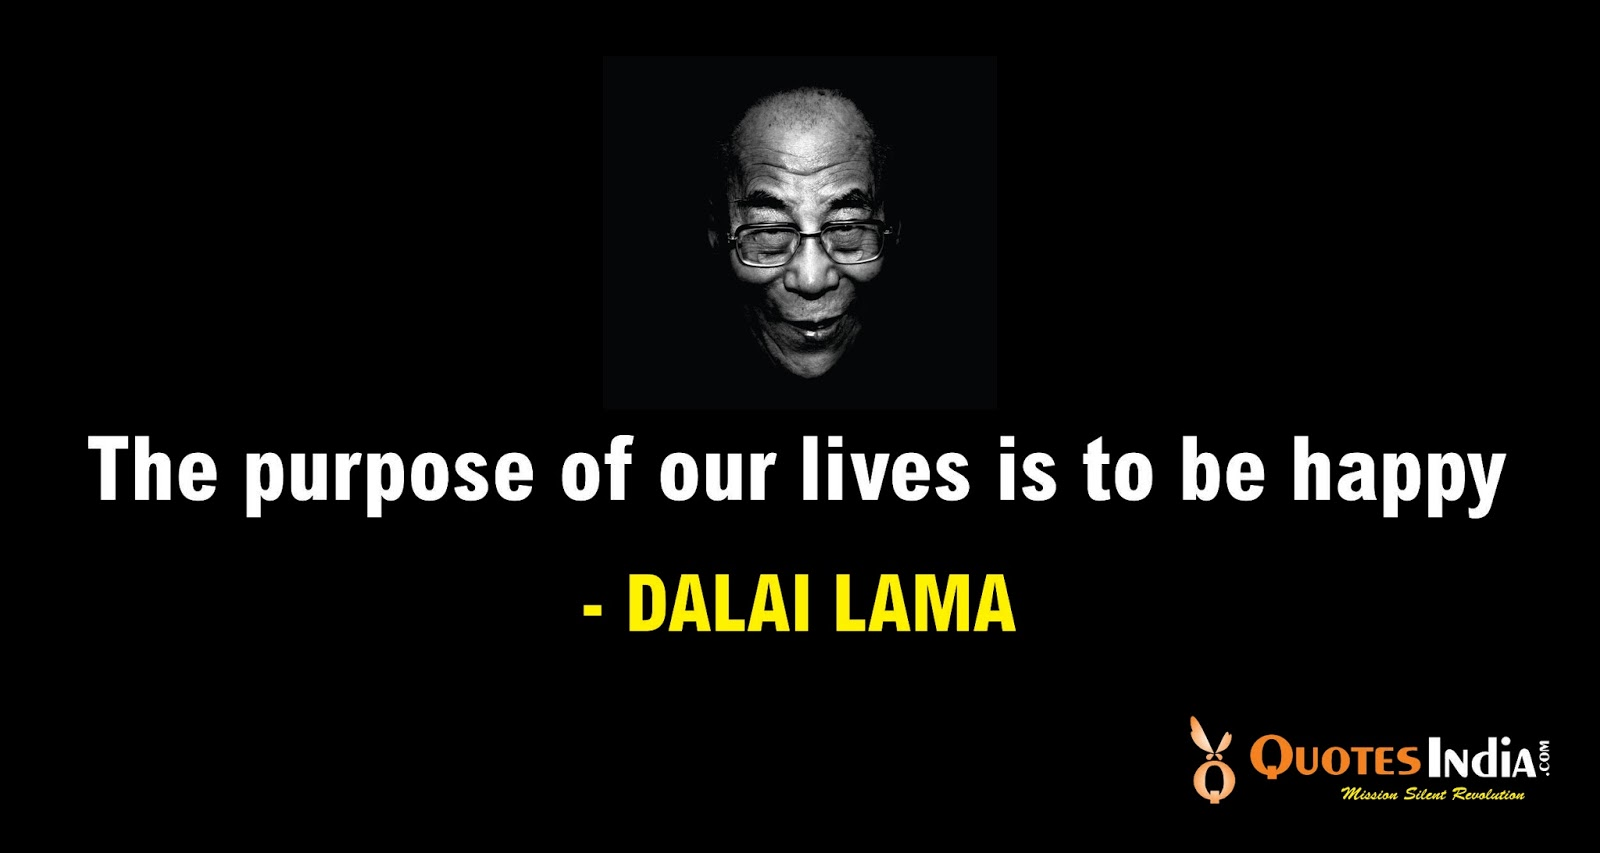 Dalai Lama Quotes On Life The Purpose Of Our Lives Is To Be Happy Dalai Lama  Quotes